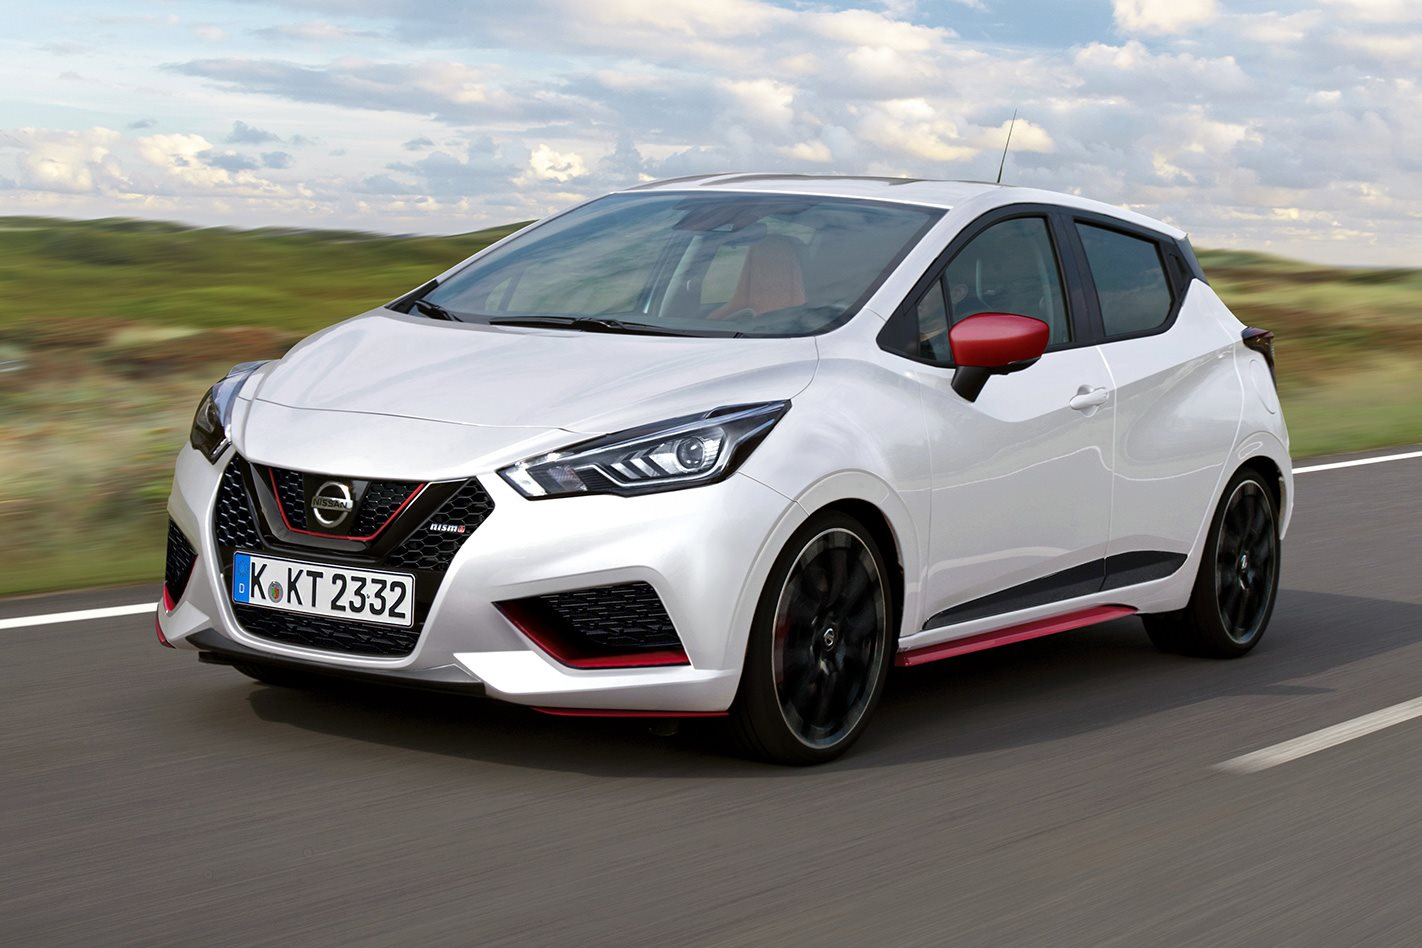 2017 nissan micra hot hatch tuned by nismo on australia s wishlist wheels. Black Bedroom Furniture Sets. Home Design Ideas